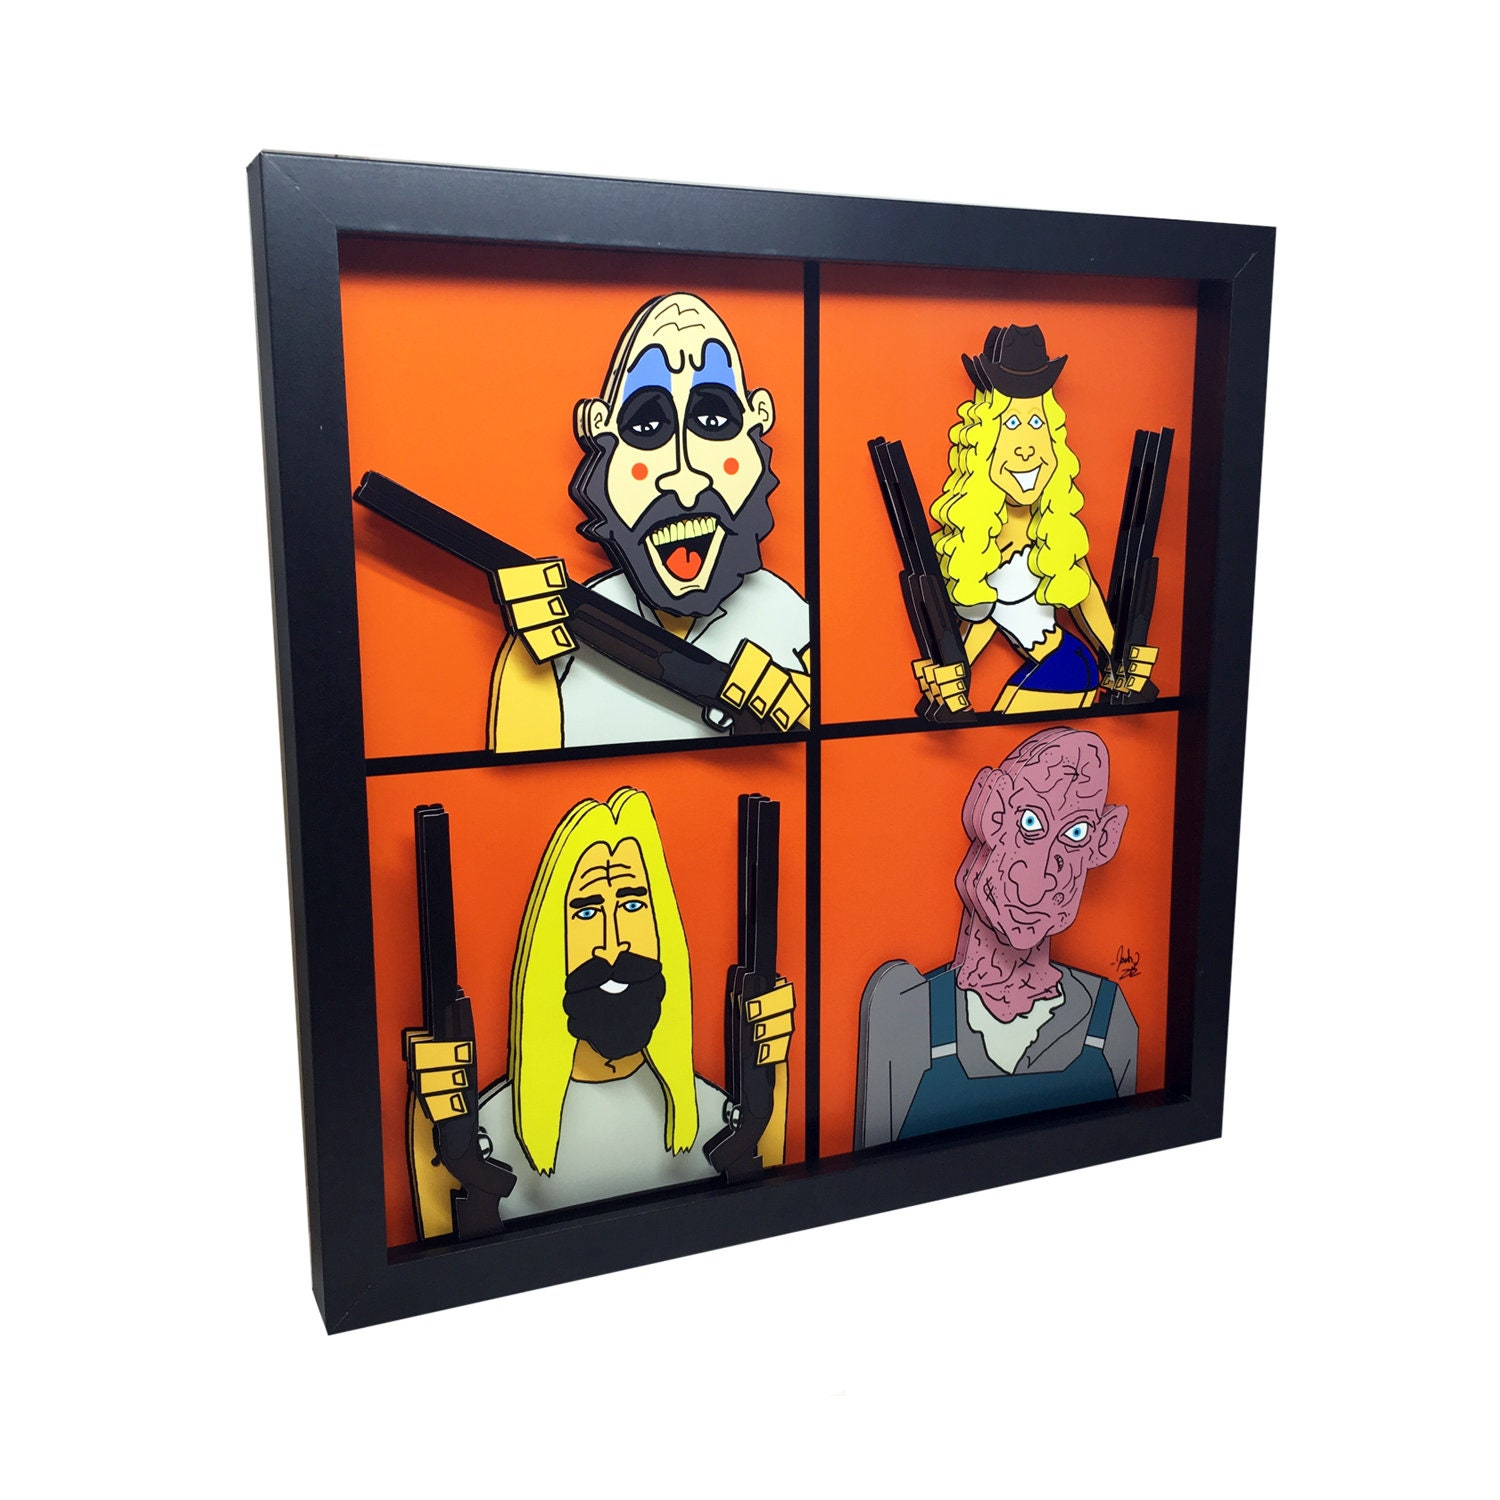 710ba2cdecc2 Captain Spaulding Art Rob Zombie Art The Devil's Rejects 3D Art House of  1000 Corpses Horror Decor Captain Spaulding Poster Horror Art Print